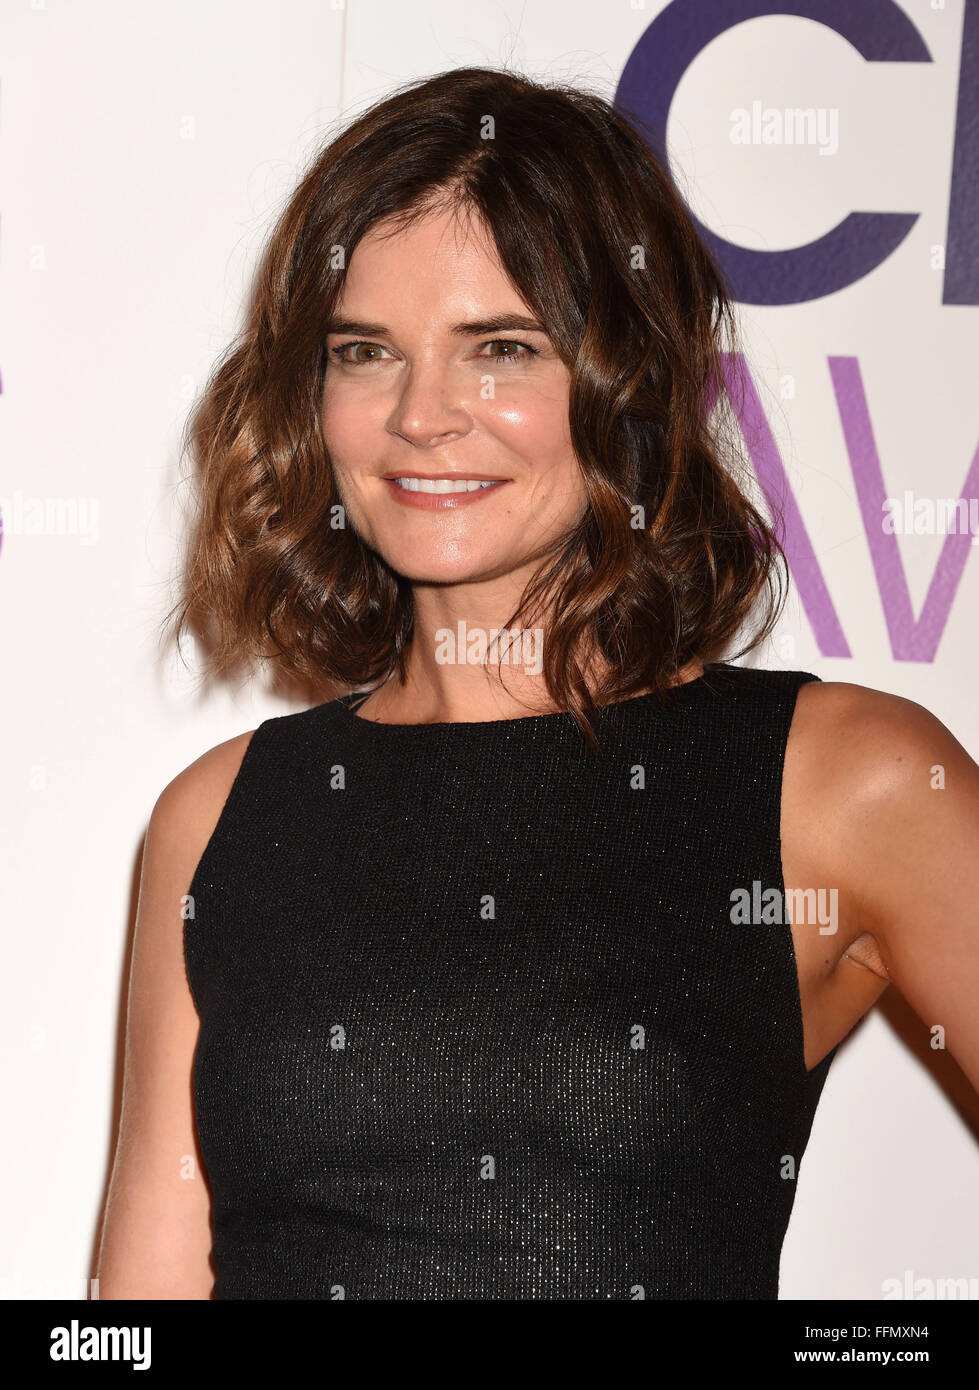 Actress Betsy Brandt attends the People's Choice Awards 2016 - Nominations Press Conference at The Paley Center - Stock Image